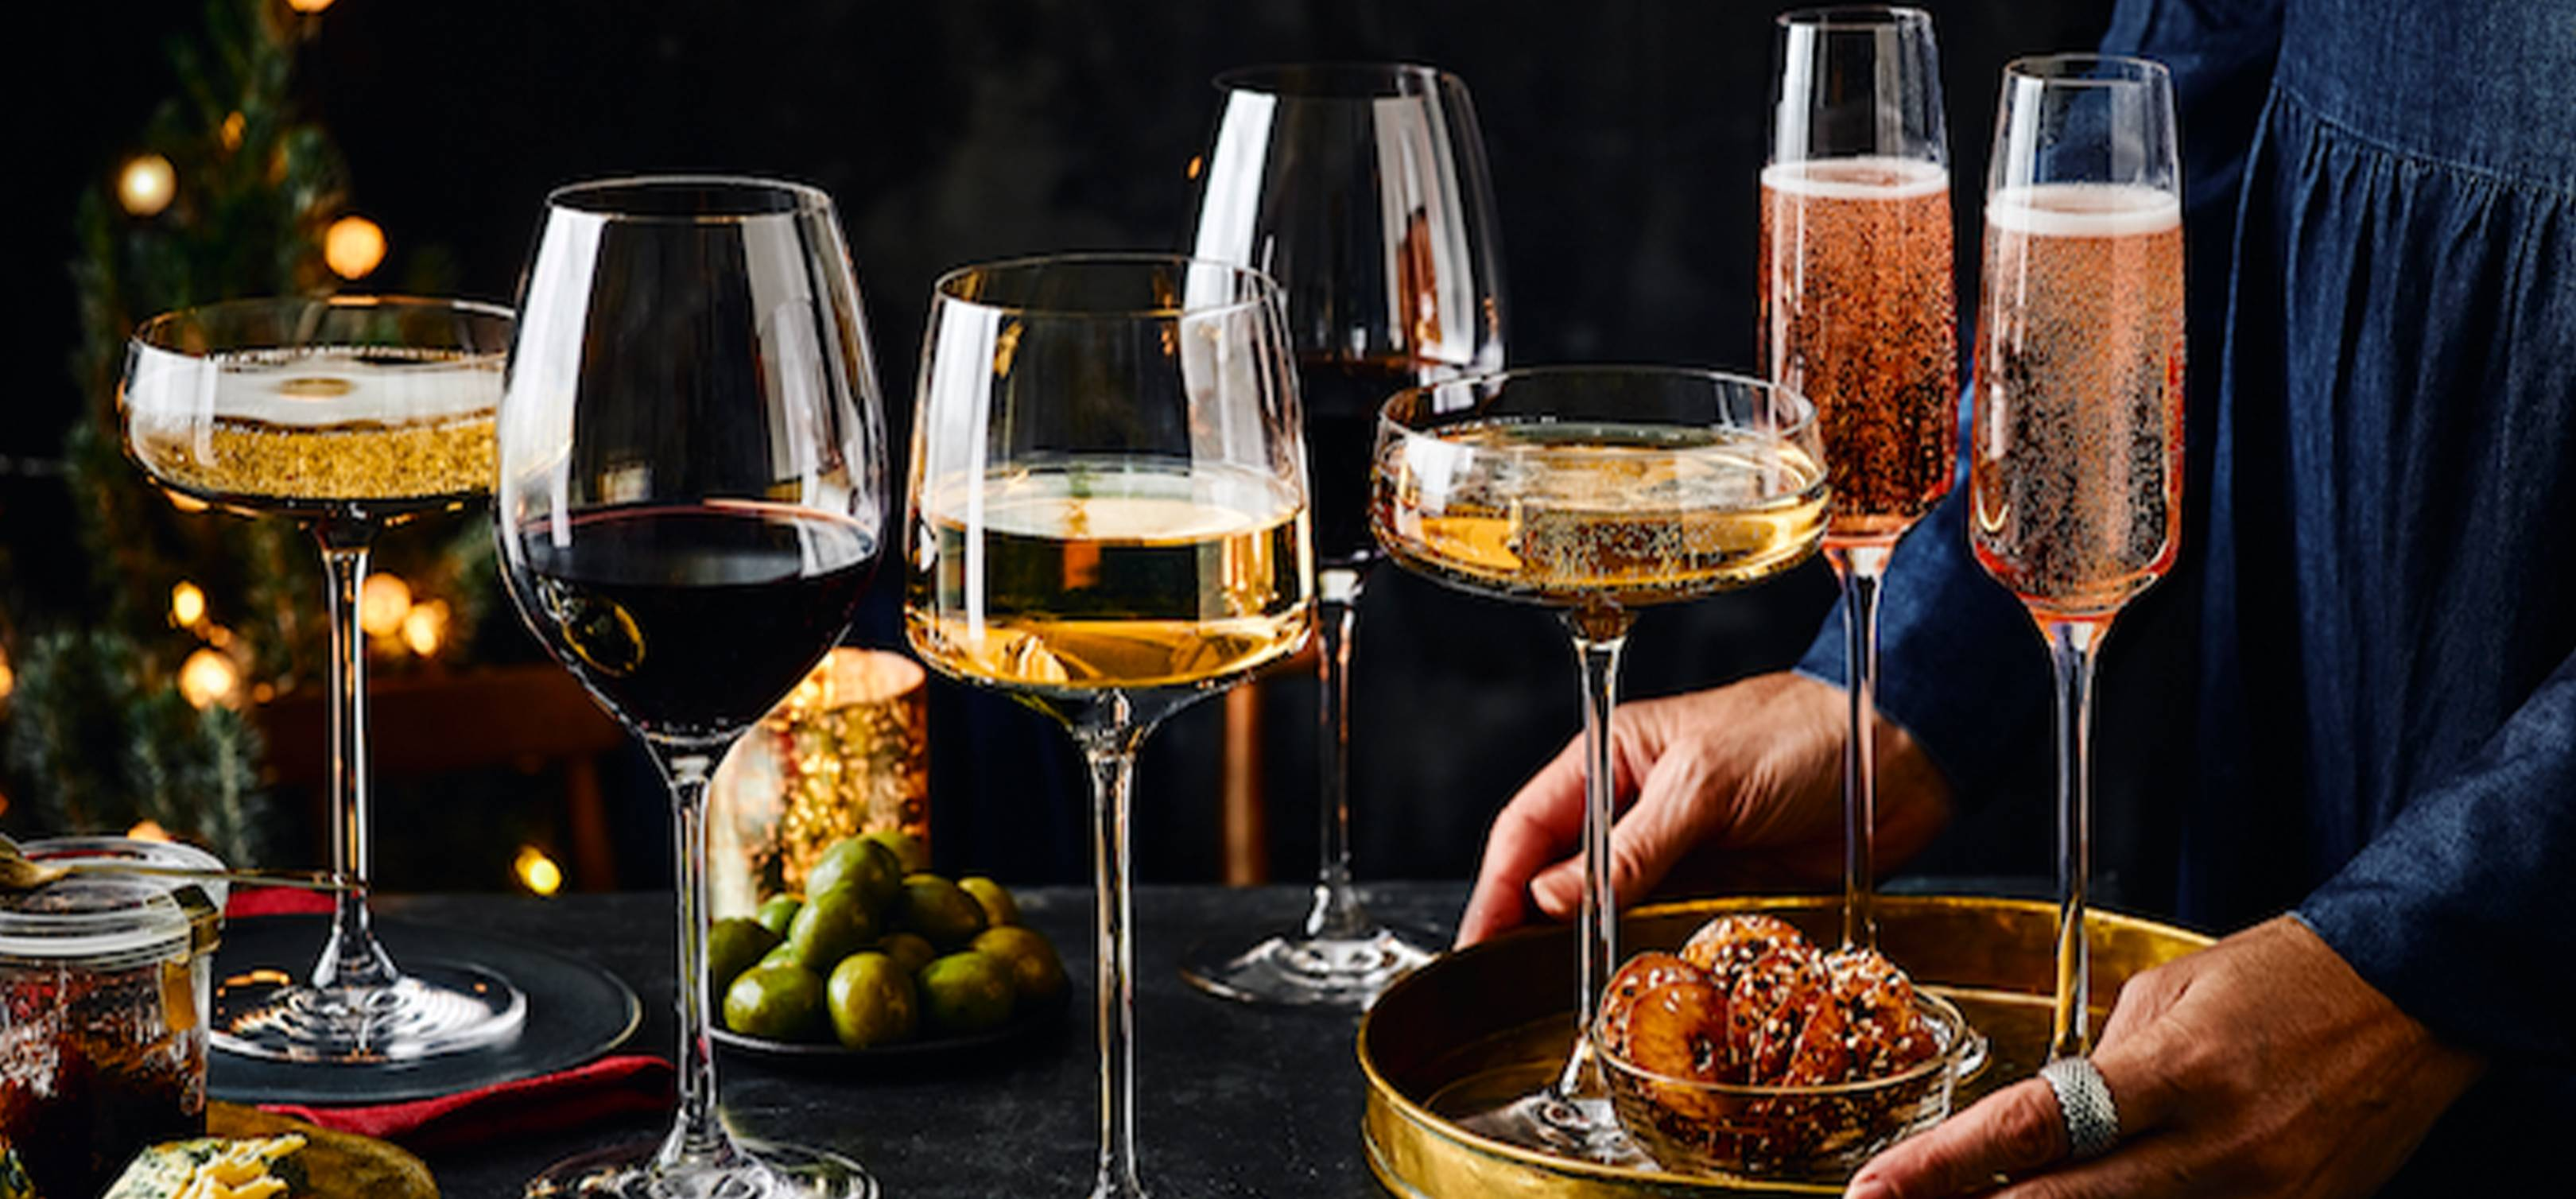 The Best Supermarket Wines To Try For Christmas According To A Wine Expert | Glamour UK